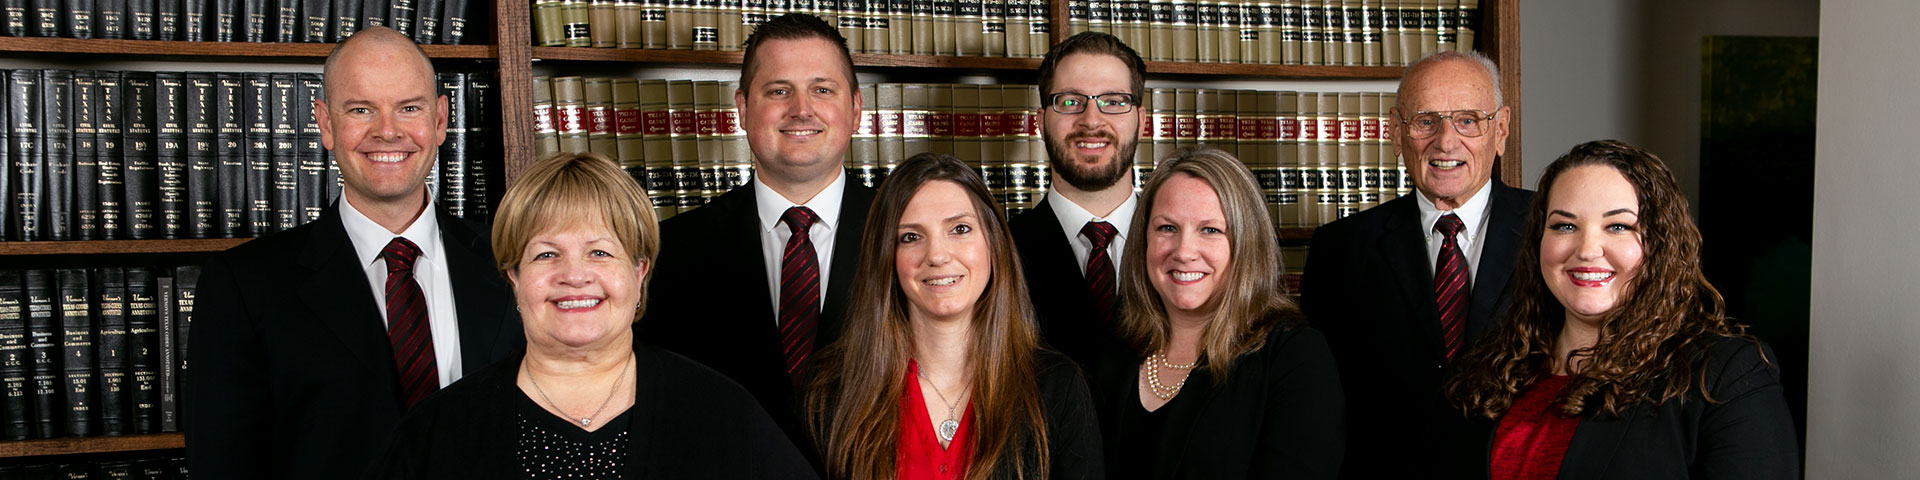 The Manning & Meyers Law Firm